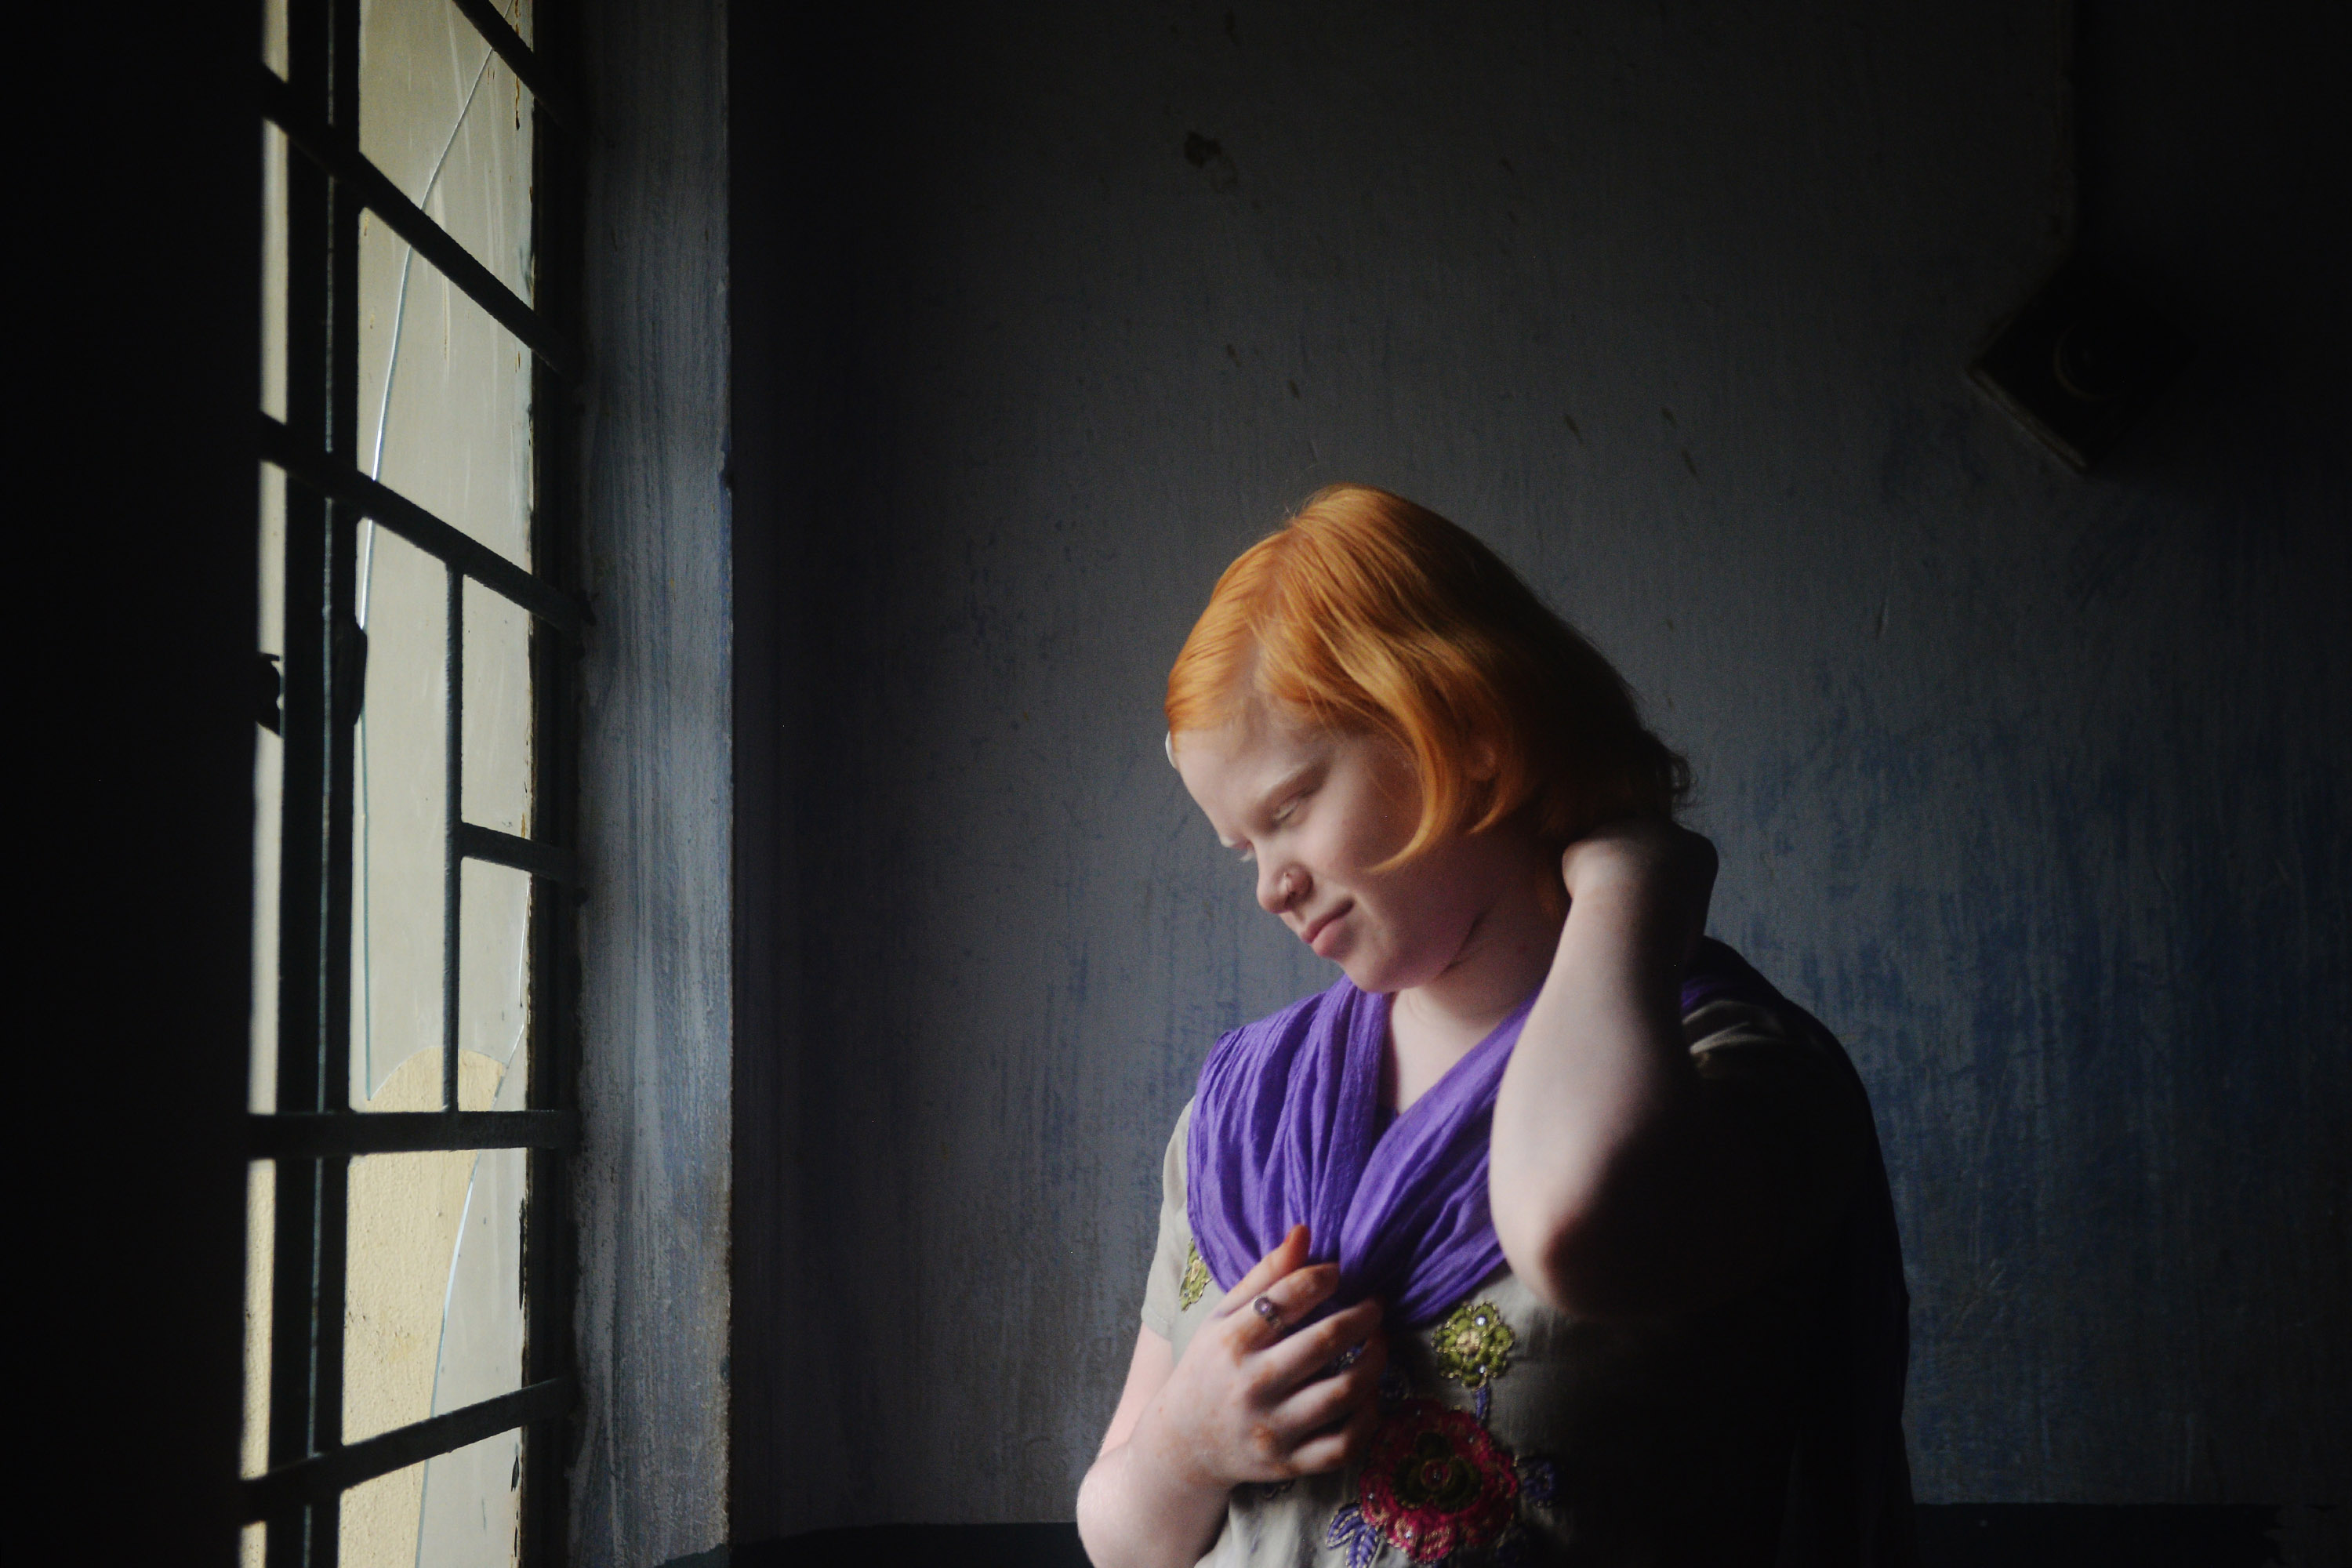 Reema Khatun , an albino student, grooms herself during recess. Credit: Sutirtha Chatterjee